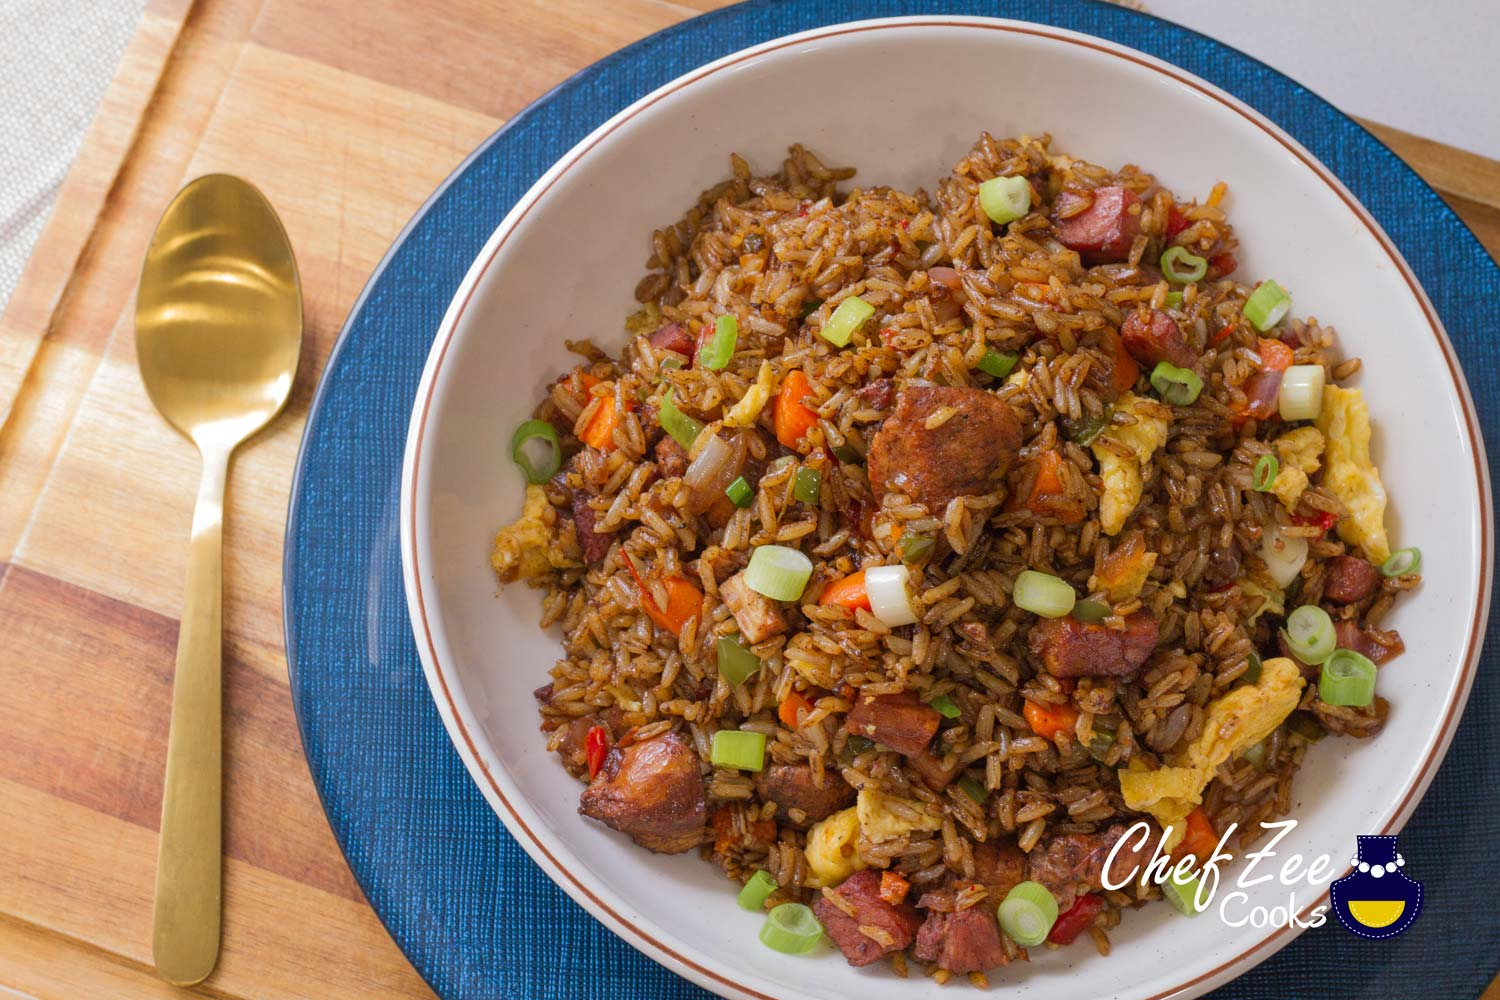 Chofan Dominicano Arroz Chino Chef Zee Cooks